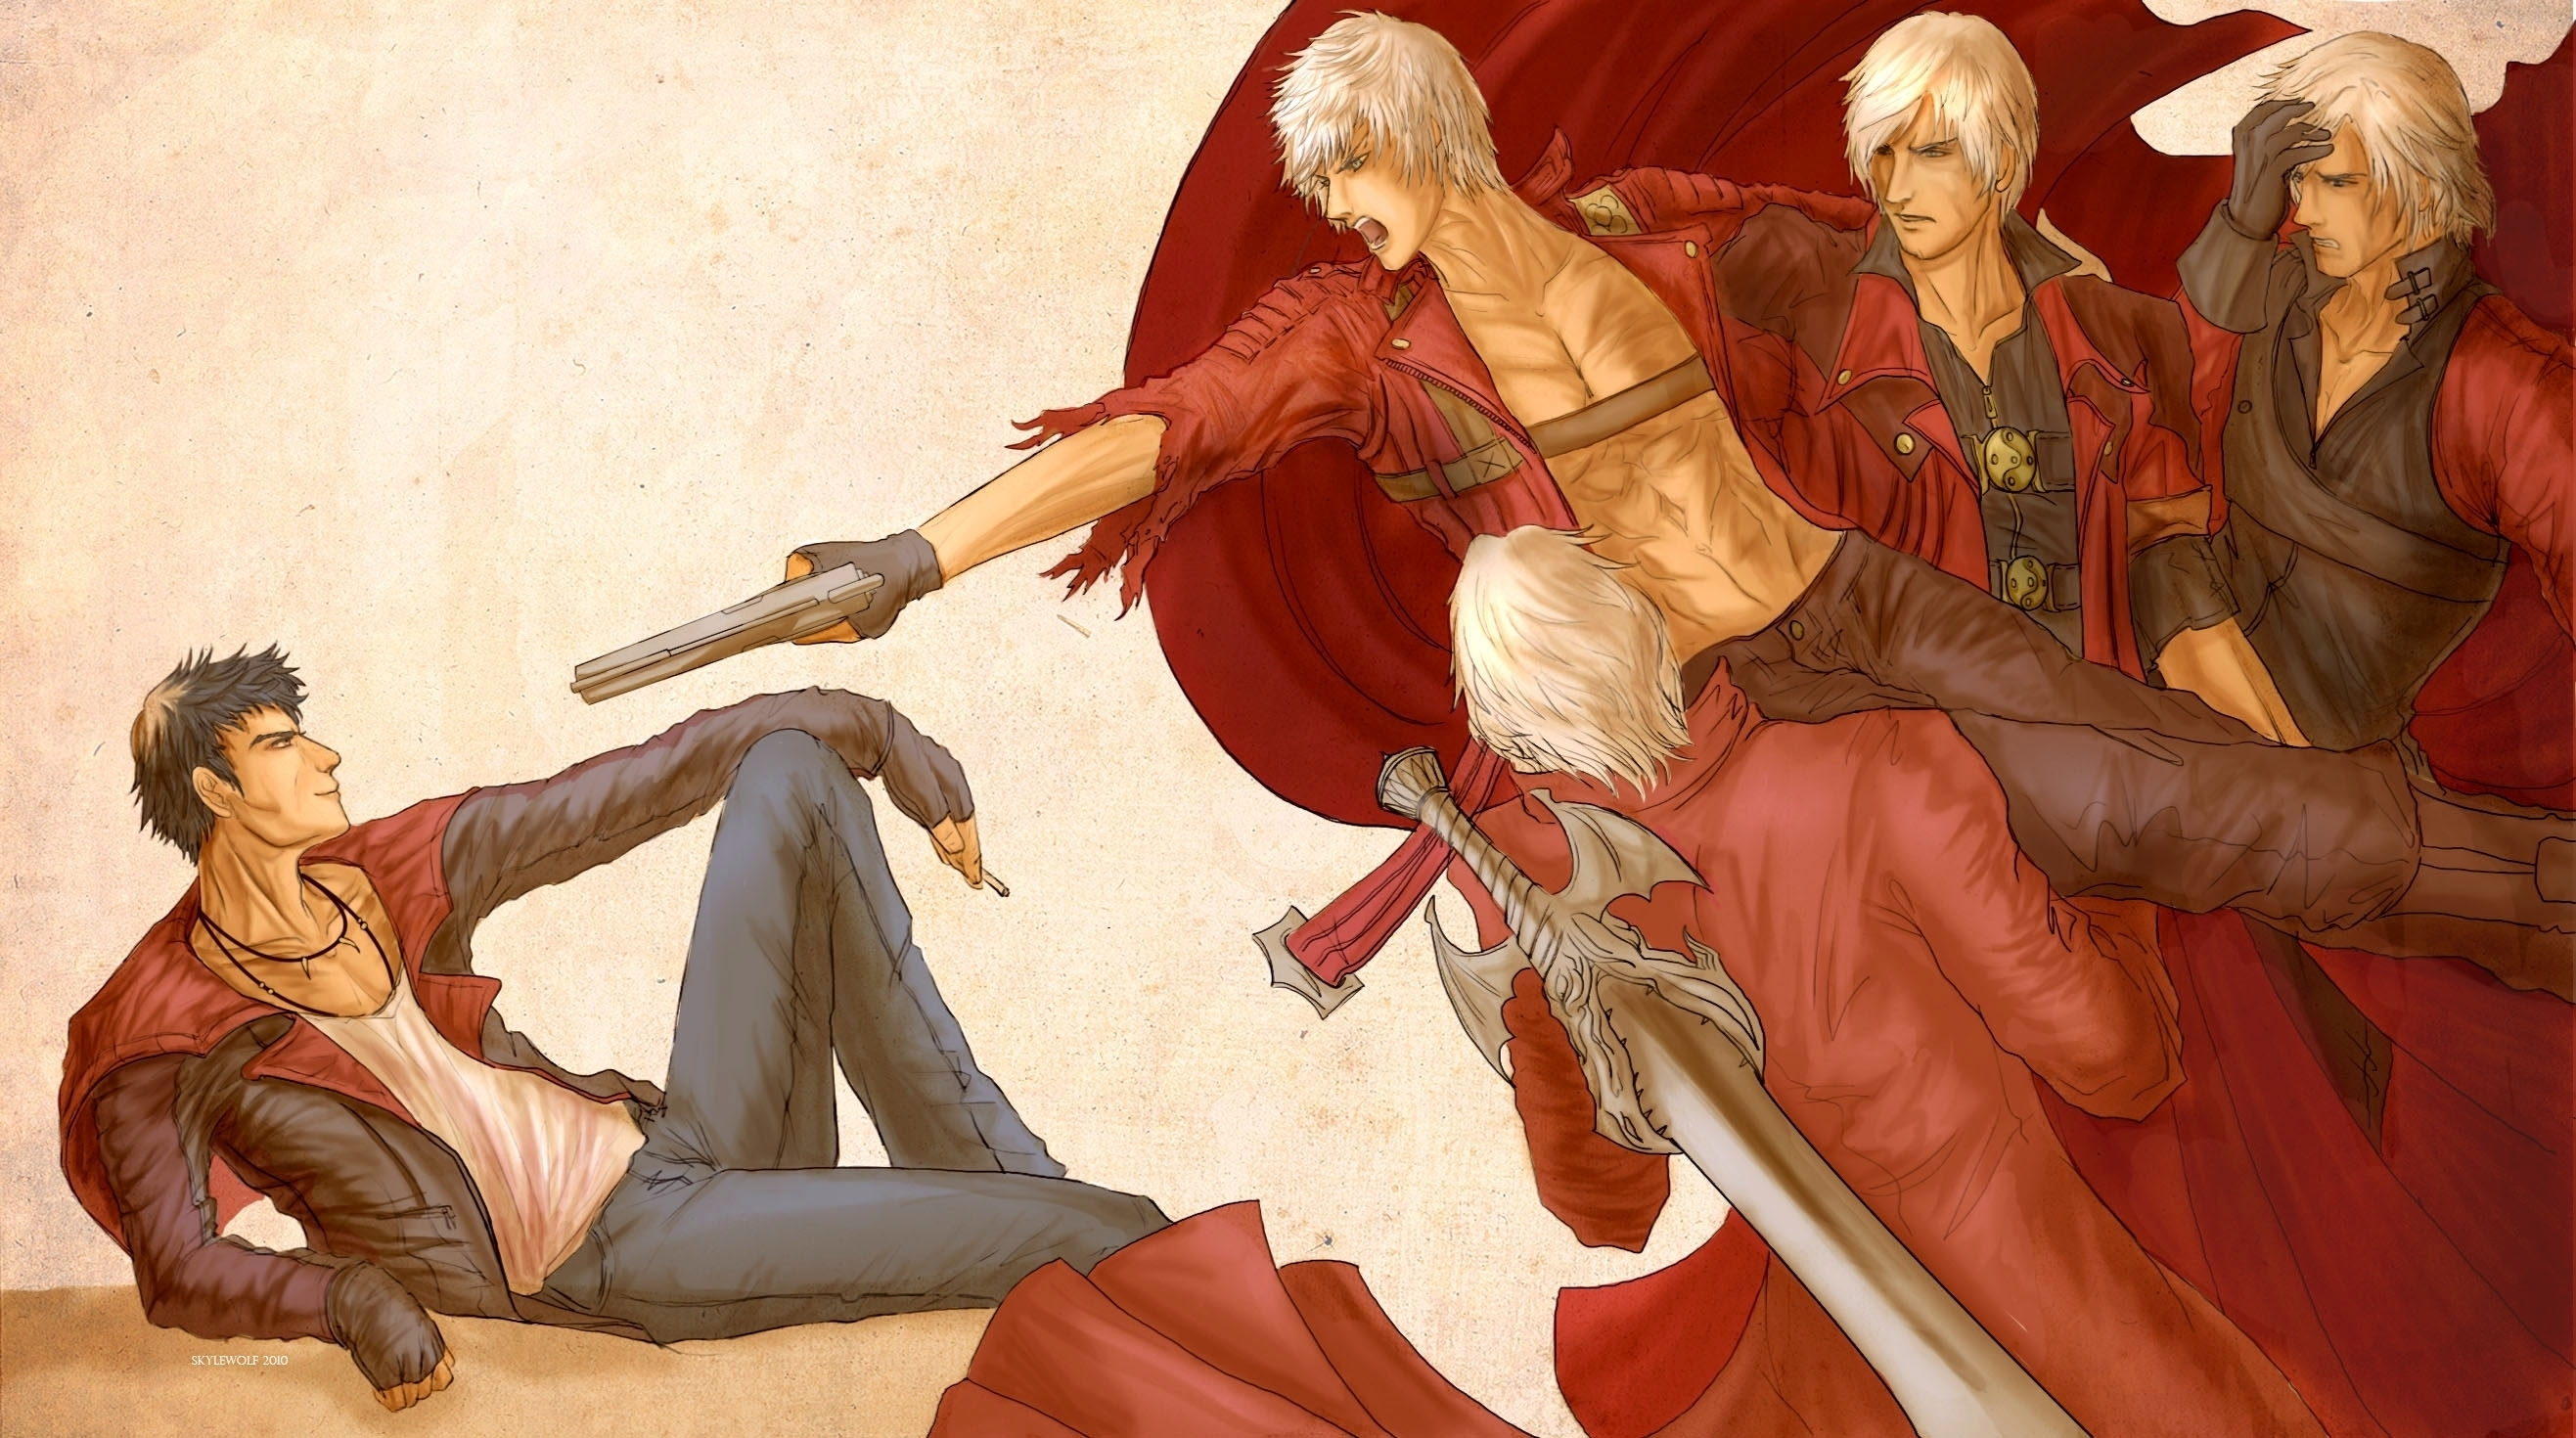 Devil May Cry Hd Wallpaper Posted By Christopher Thompson